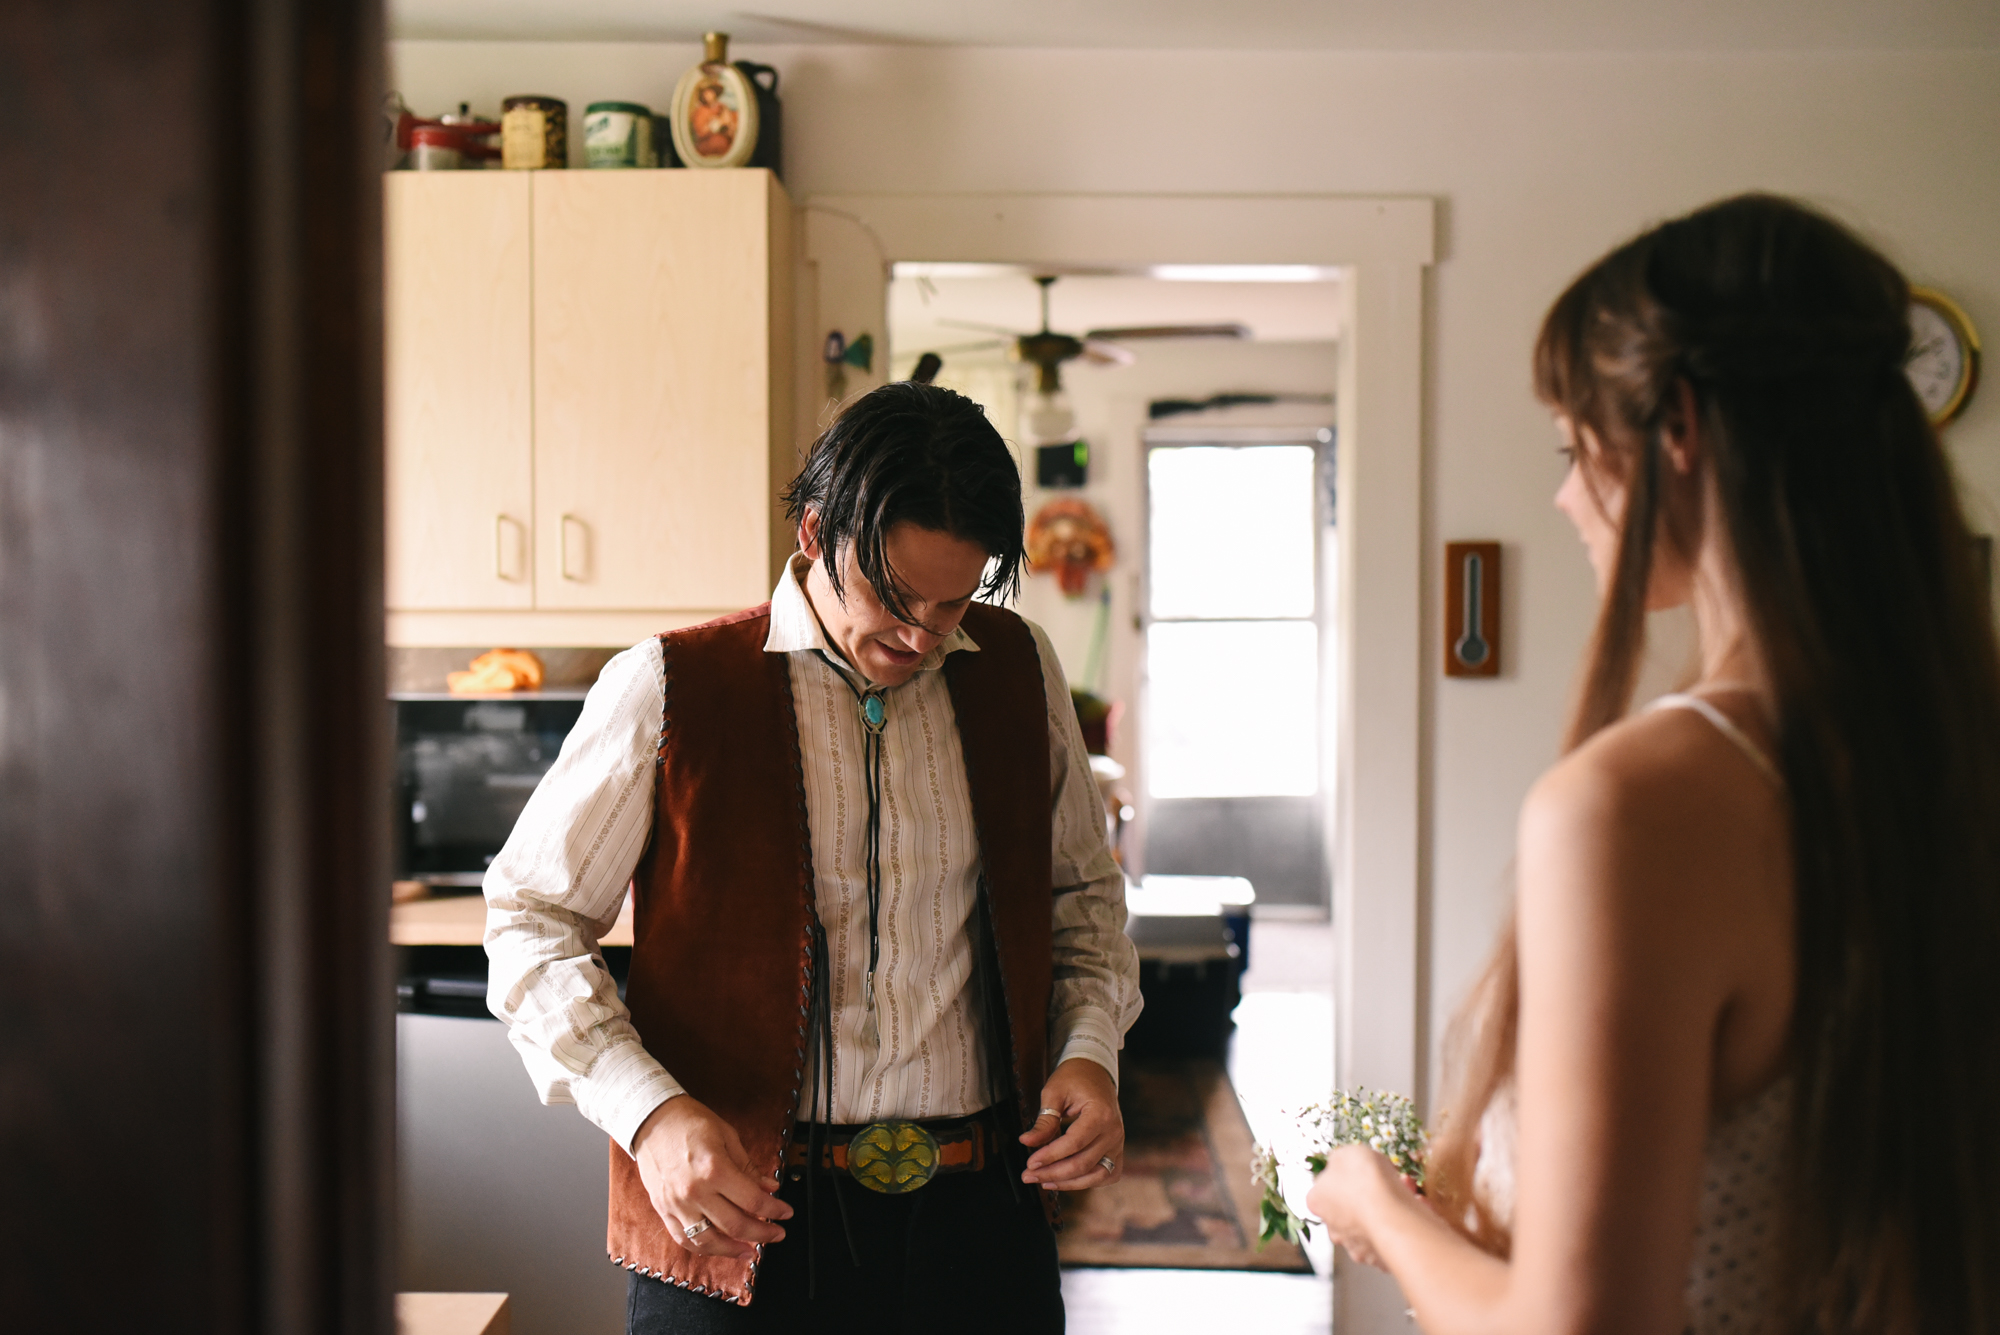 Mountains, Outdoors, Rustic, West Virginia, Maryland Wedding Photographer, DIY, Casual, Bride and Groom getting ready before ceremony